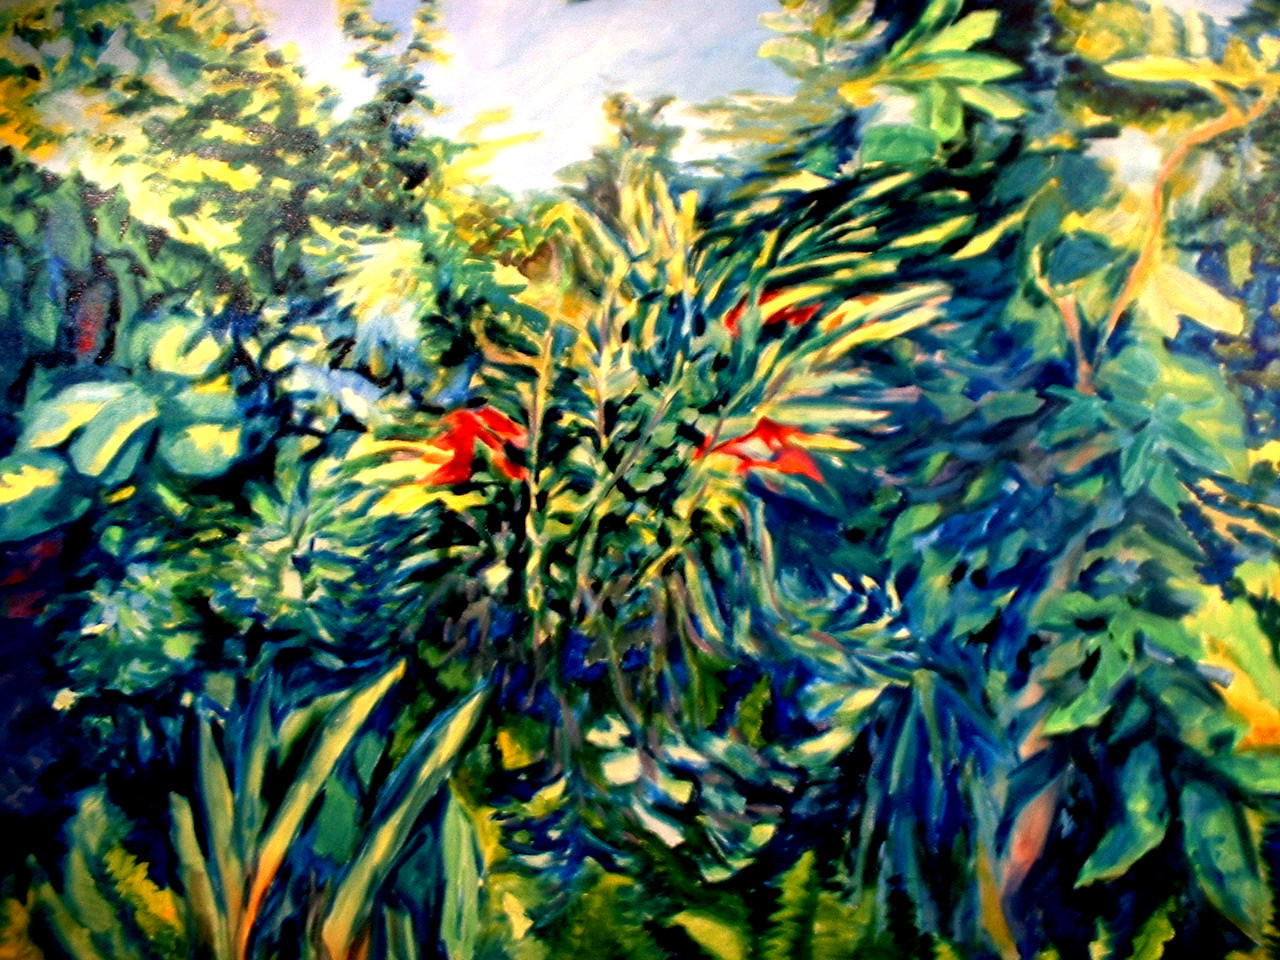 "©John Rachell Title: The Garden, June 10, 2005 Image Size: 36"" X 48"" Dated: 2005 Medium & Support: Oil on Canvas Signed: LL Signature"